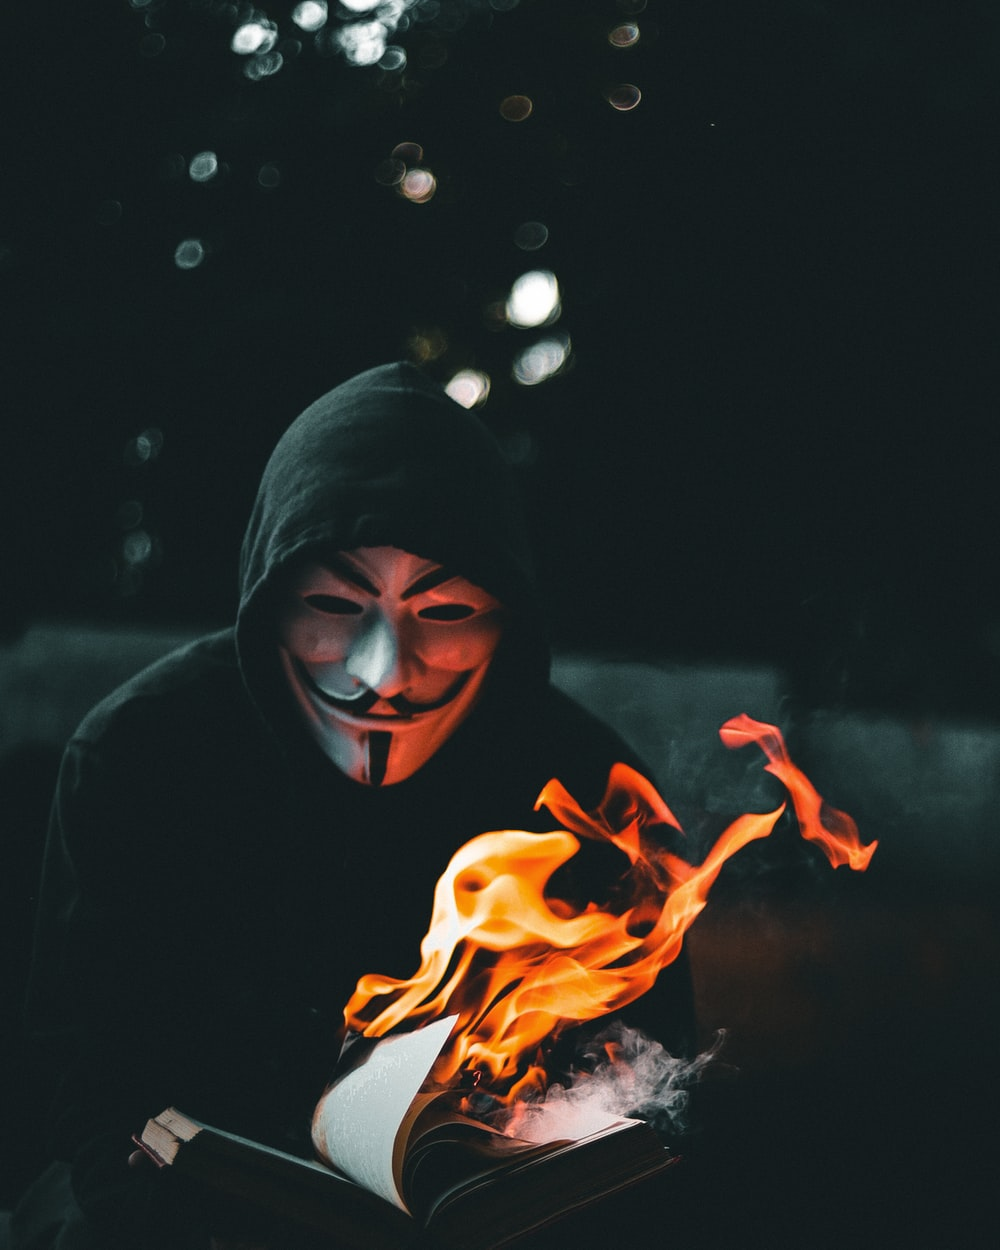 person in black hoodie with orange flame in the background